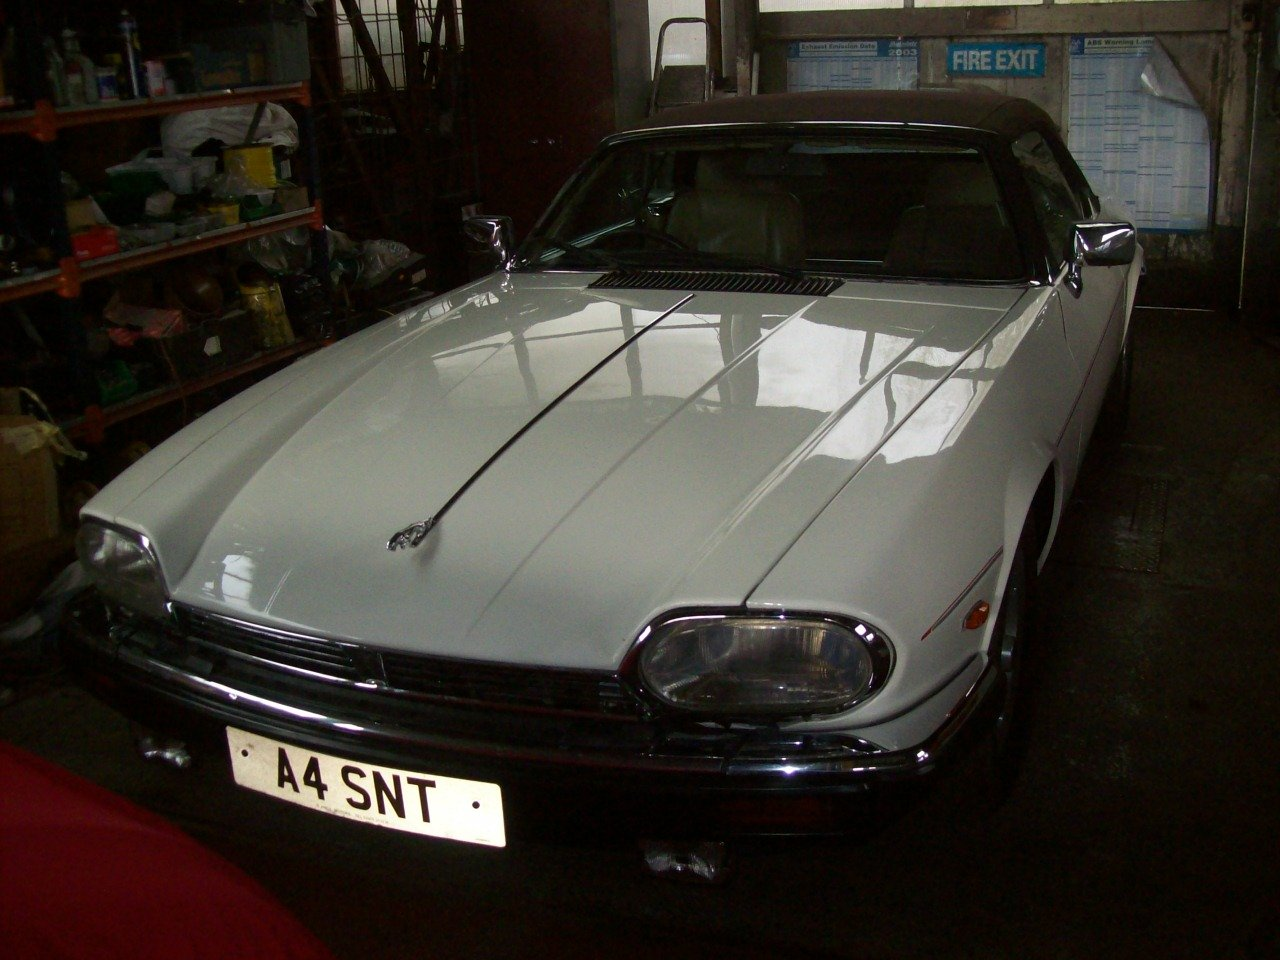 1988 Xjs v12 convertible For Sale (picture 2 of 2)